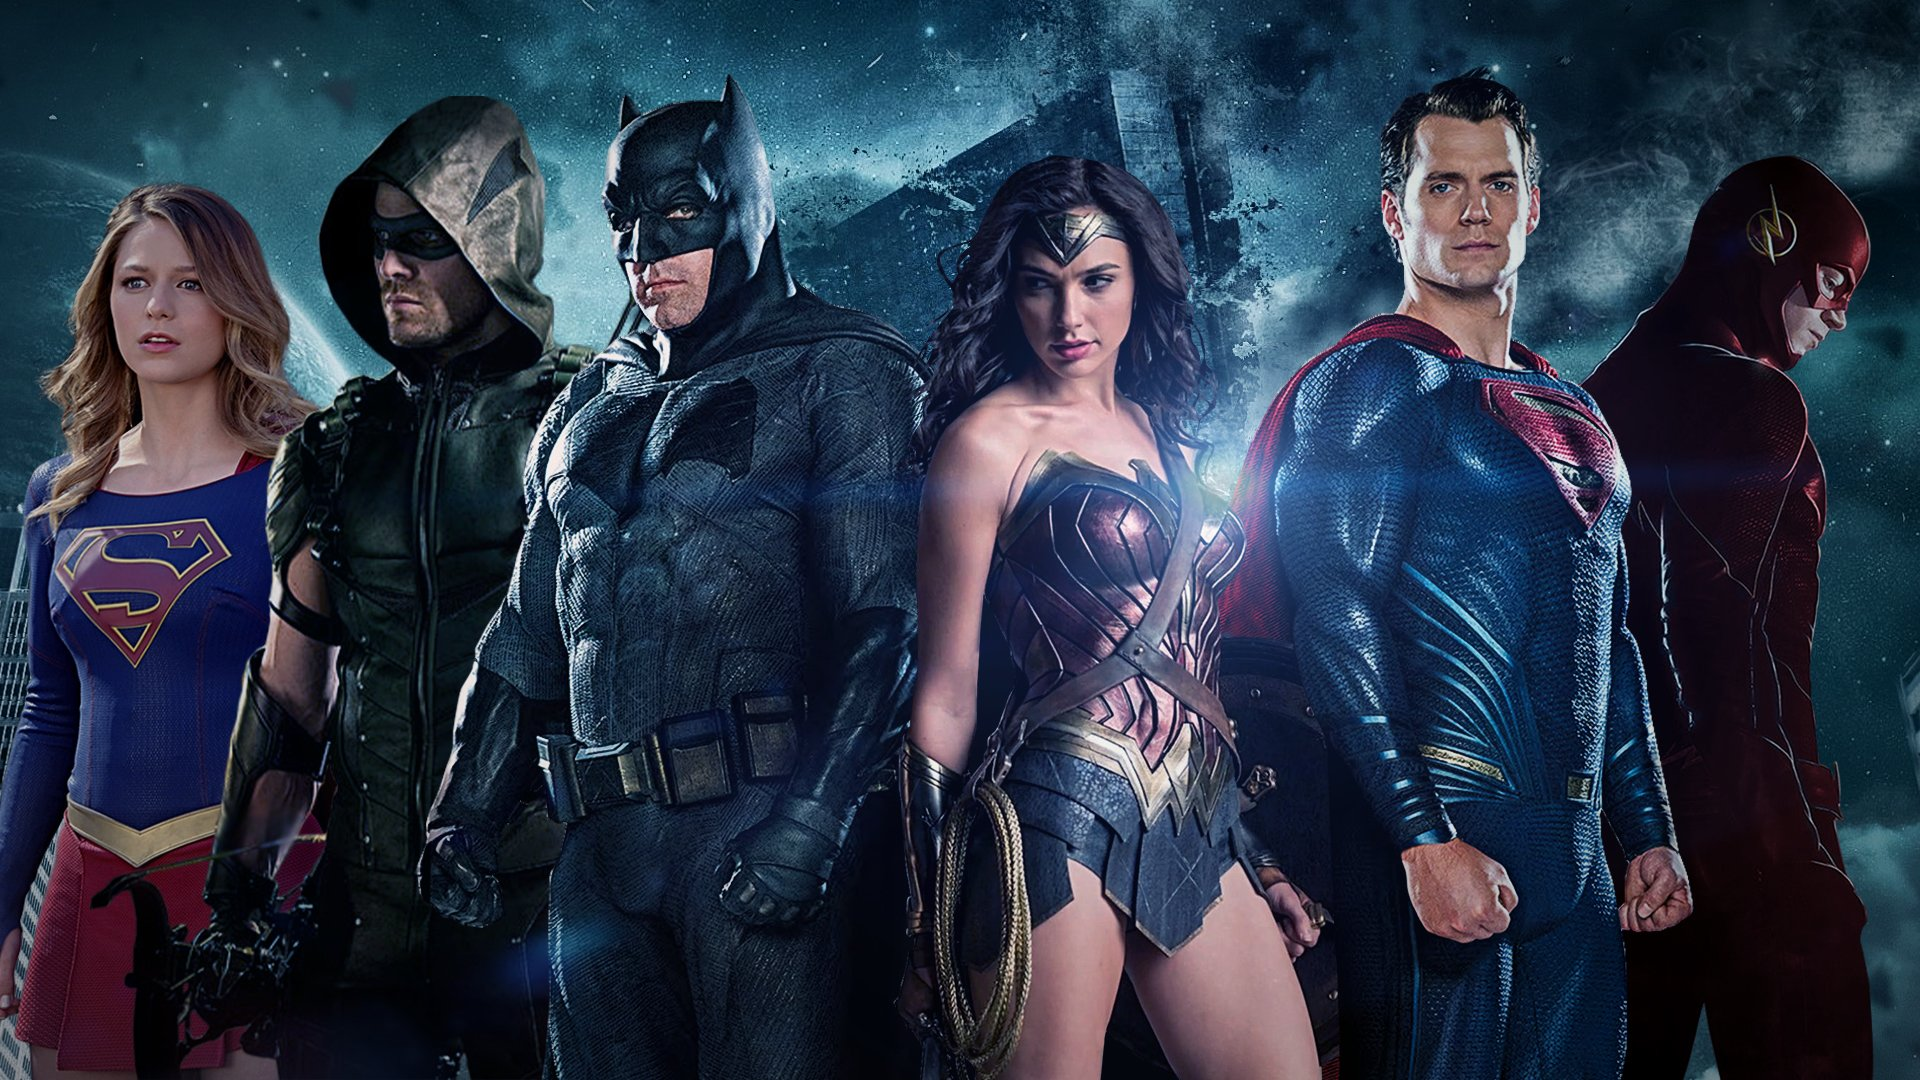 Hd wallpaper justice league - Hd Wallpaper Background Id 763348 1920x1080 Movie Justice League